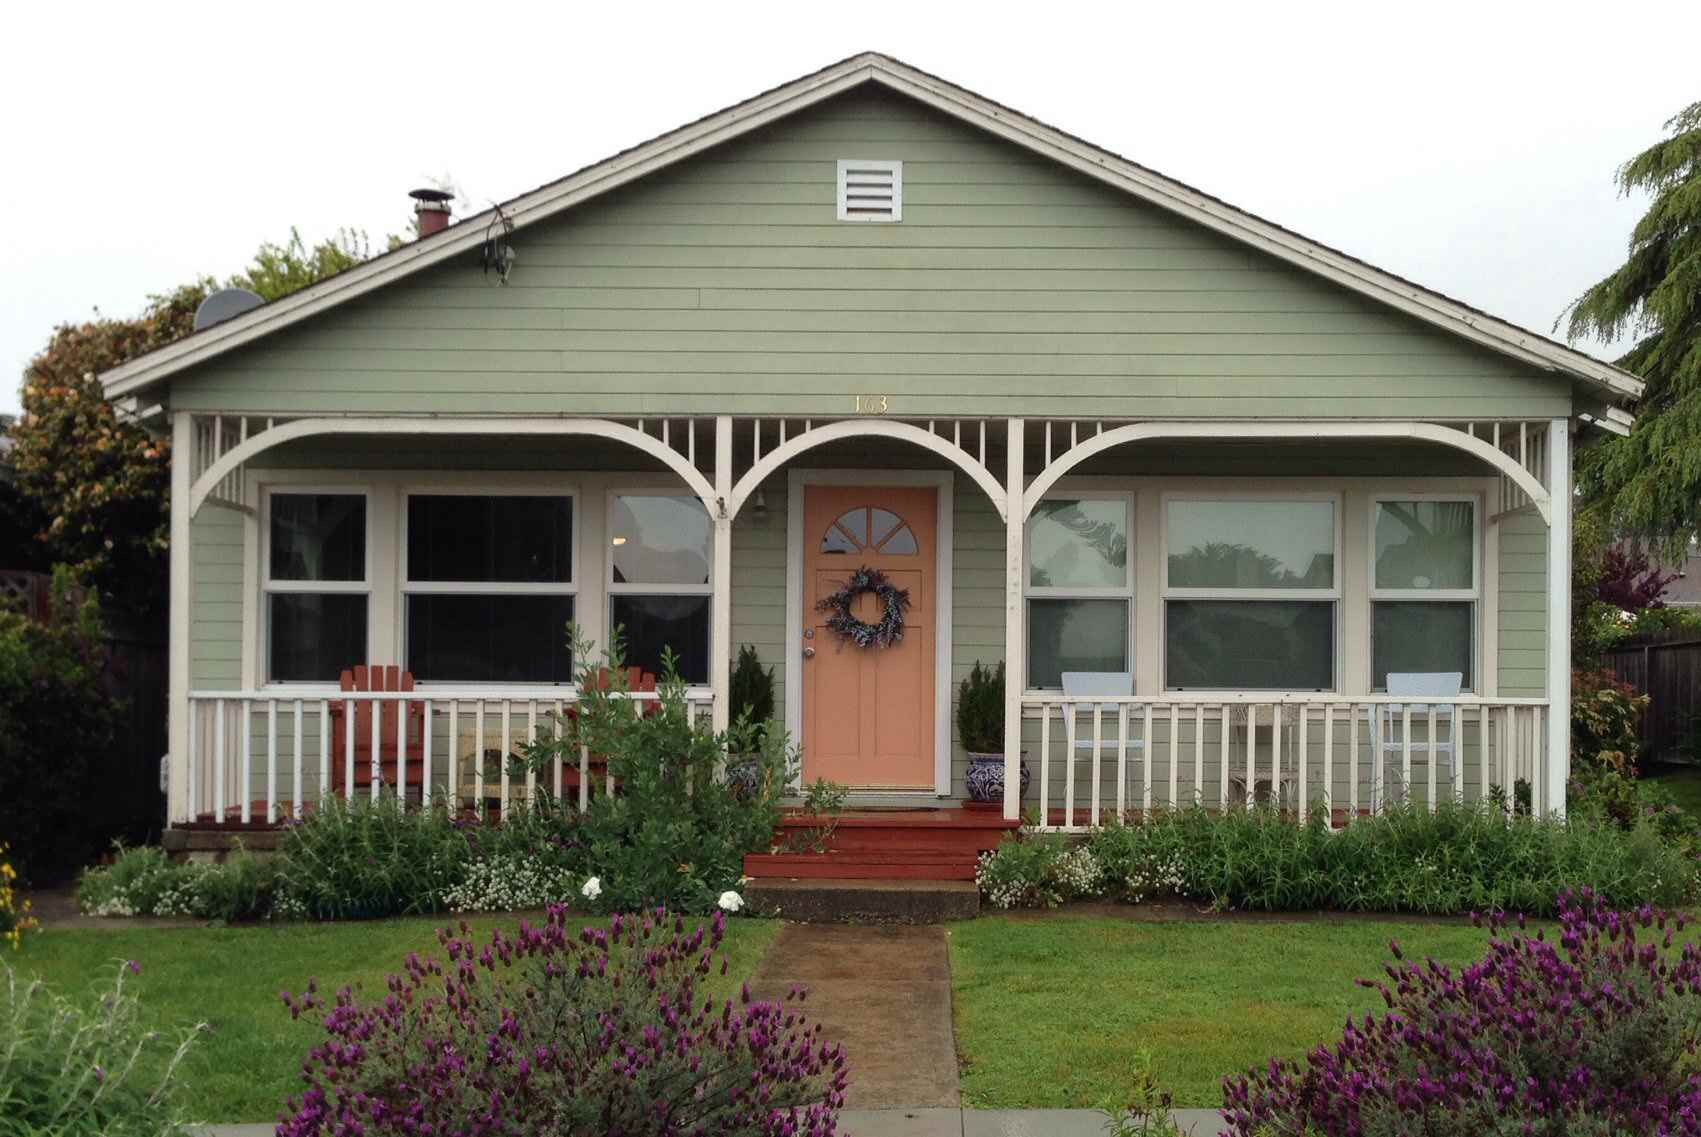 Front Gable Creates Front Porch for this Bungalow